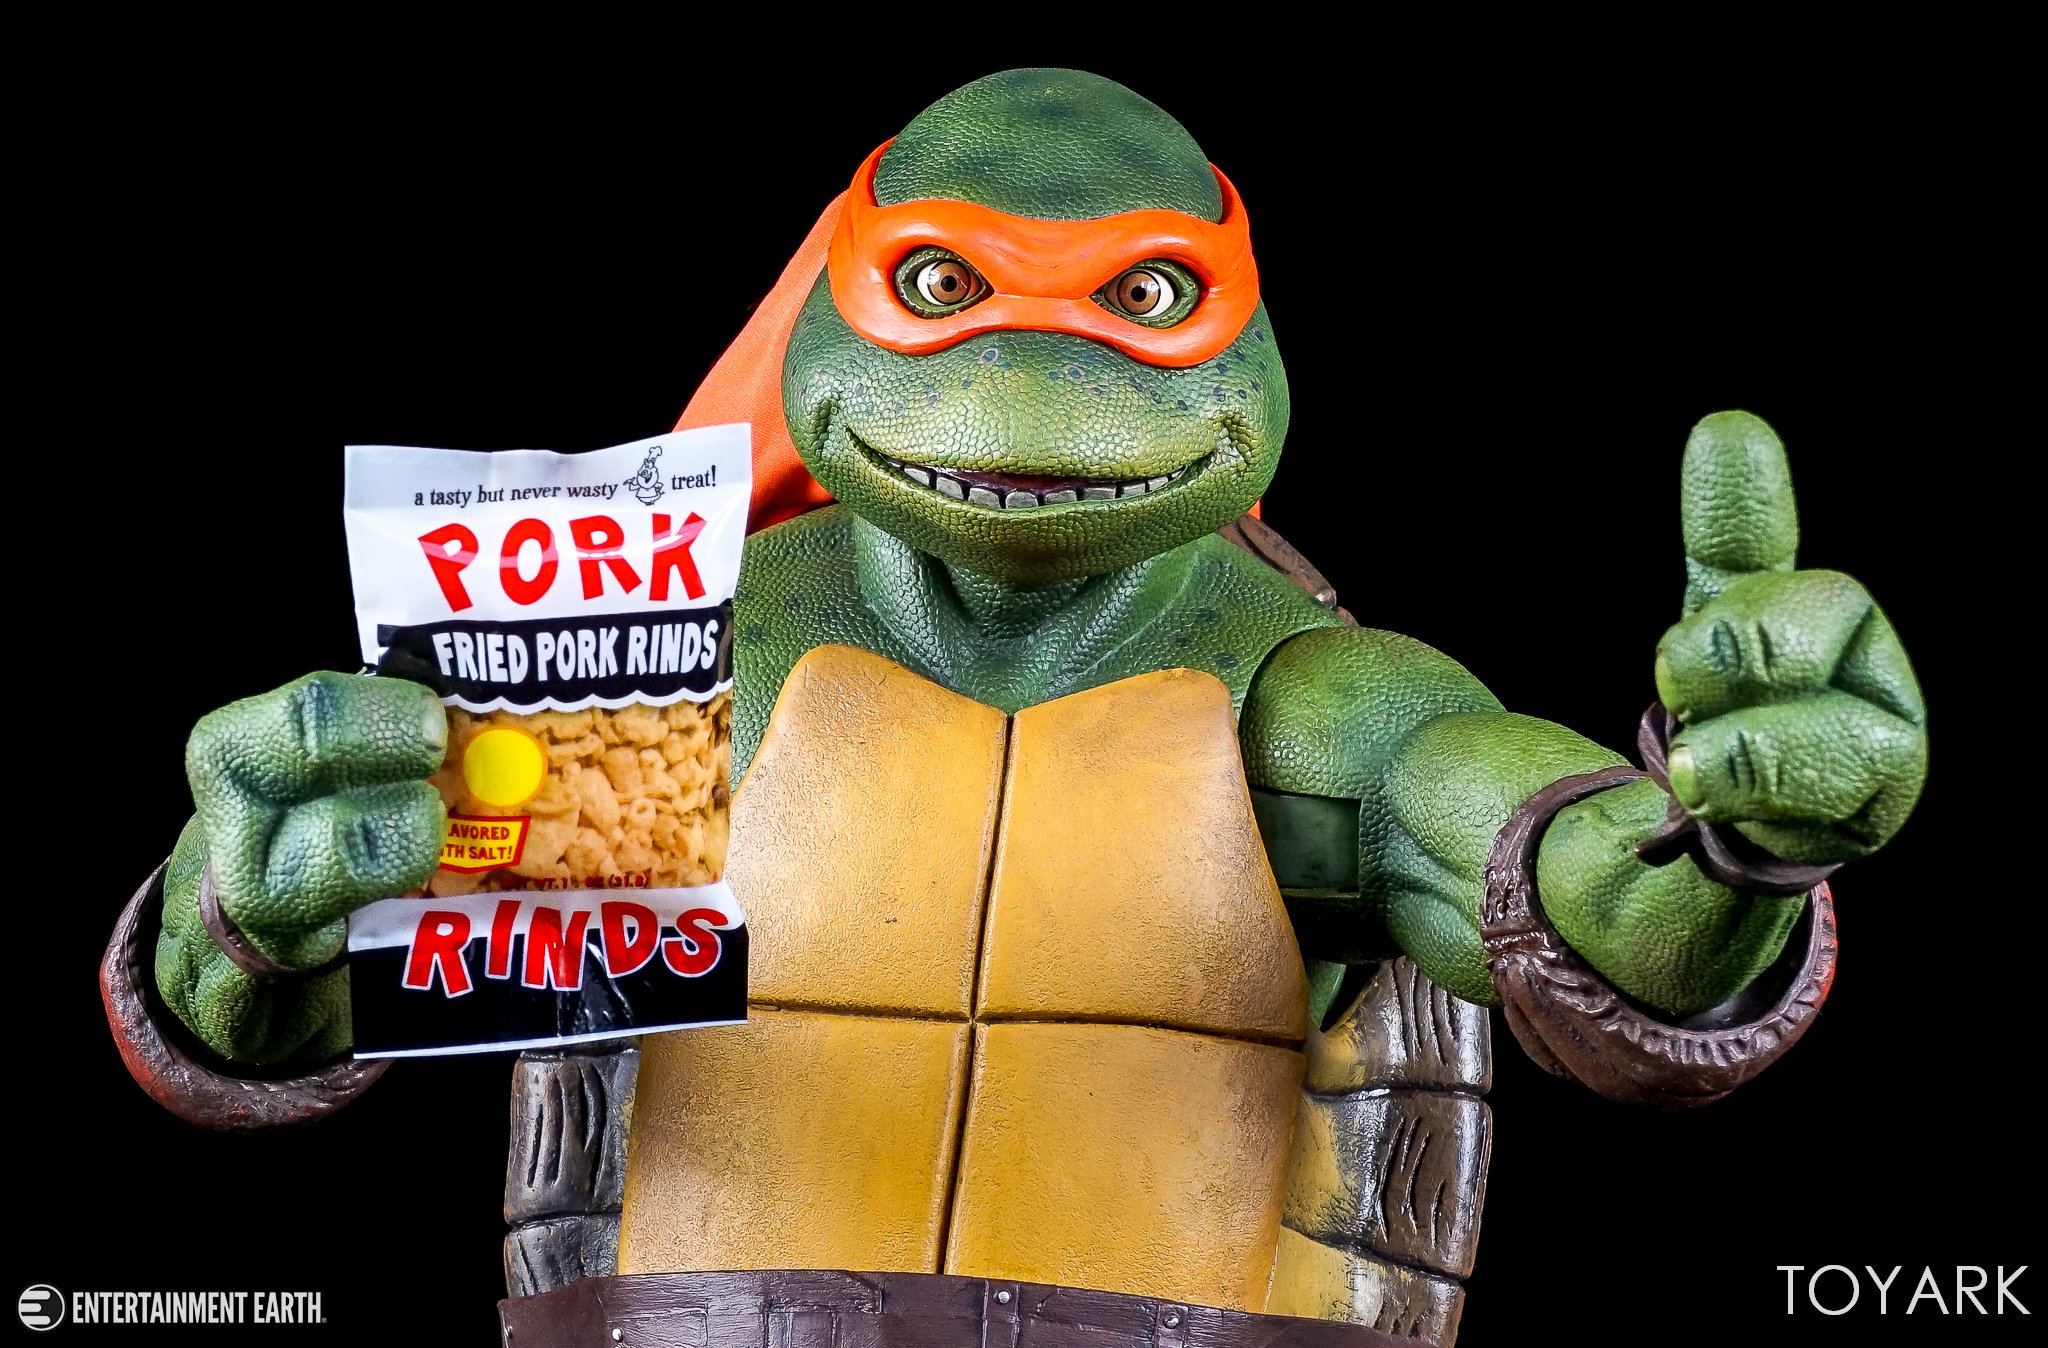 http://news.toyark.com/wp-content/uploads/sites/4/2017/10/NECA-Quarter-Scale-TMNT-Michelangelo-020.jpg